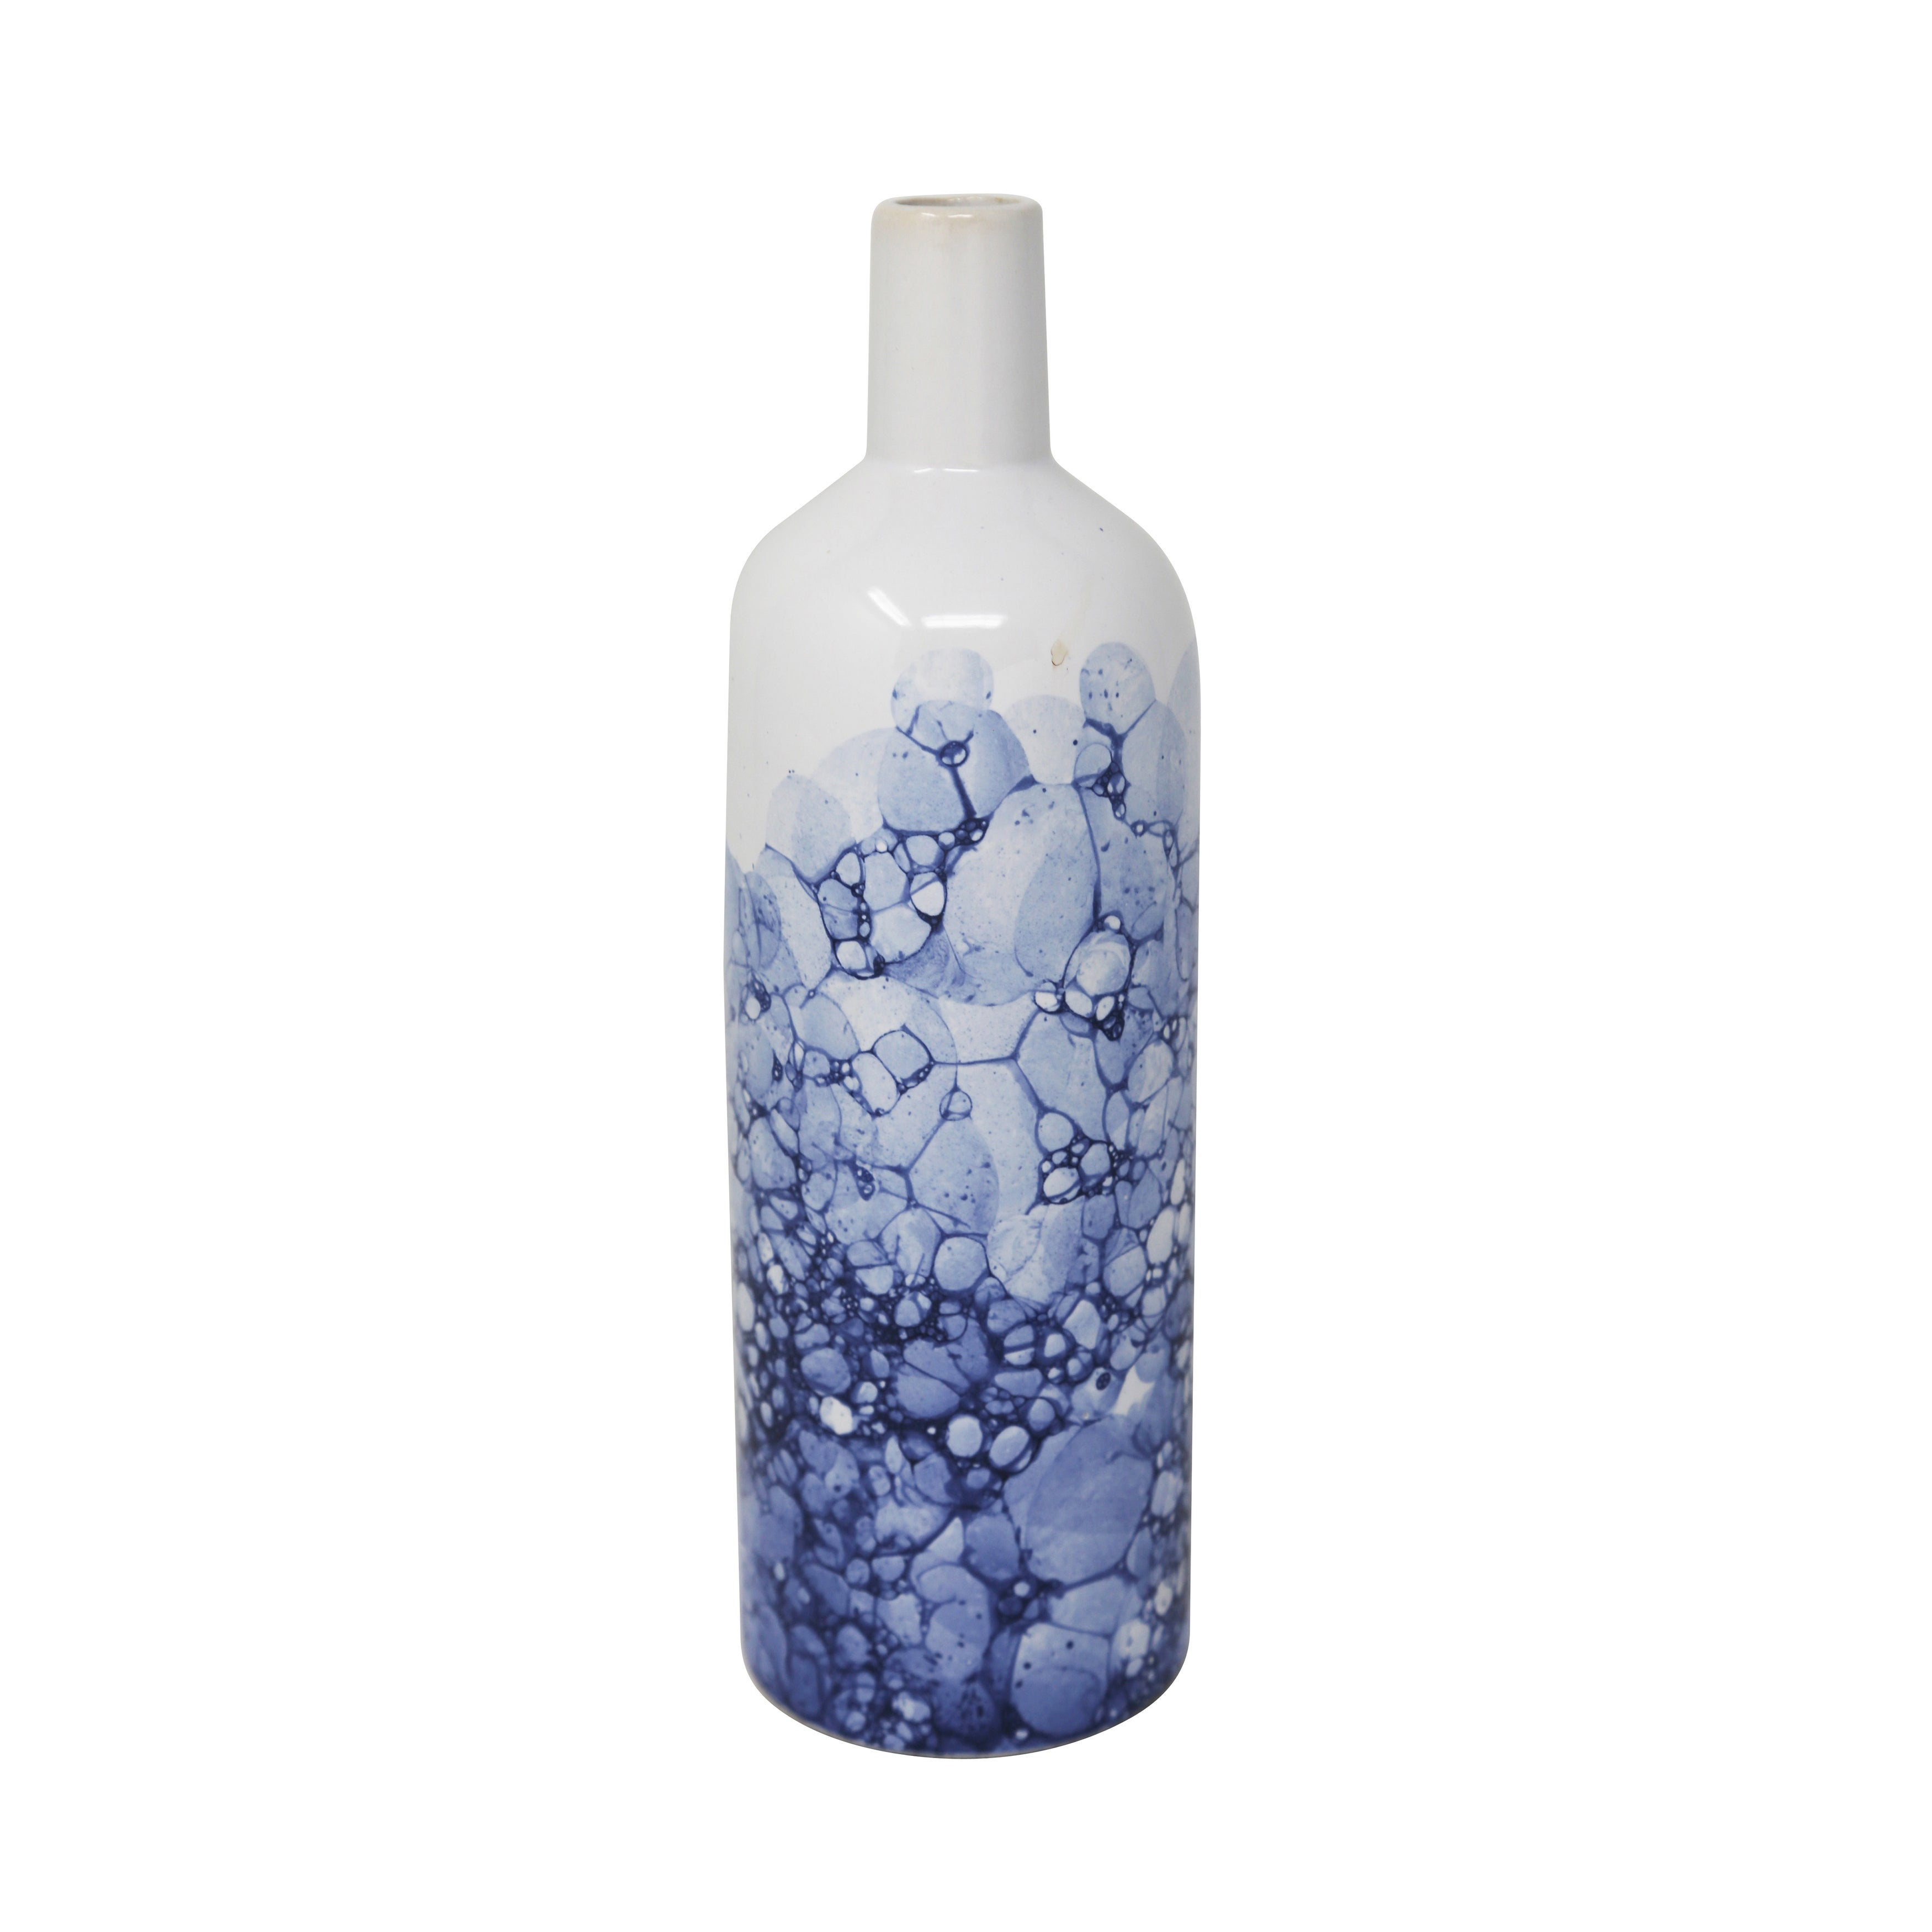 Ceramic Table Vase in Bottle Shape, Large, White and Blue